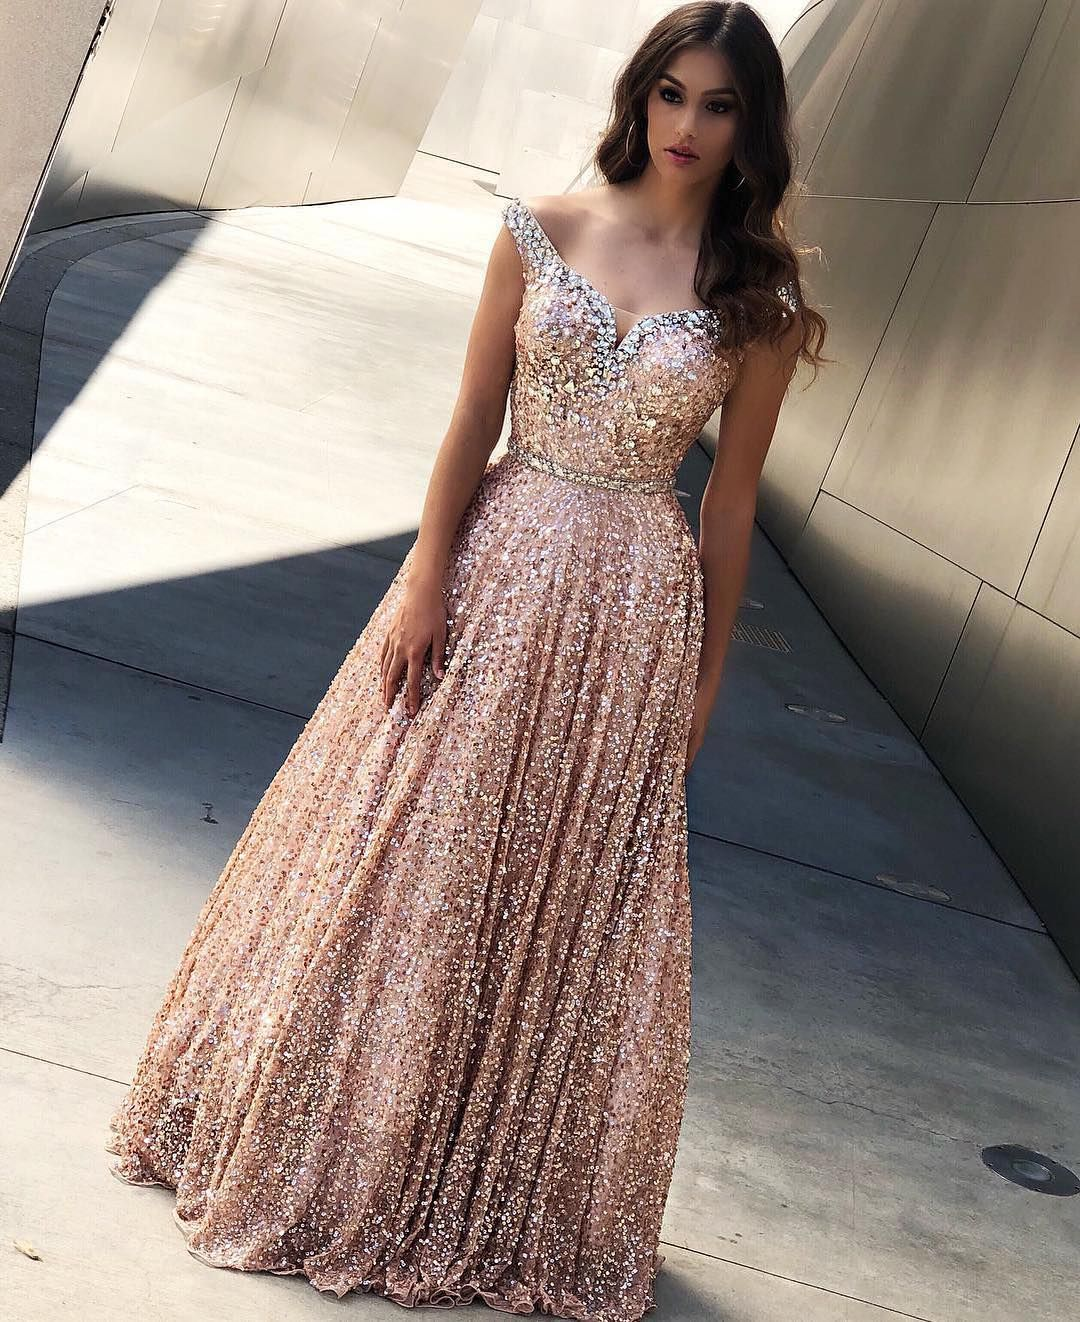 sequins dress is always gorgeous and popular. are you in